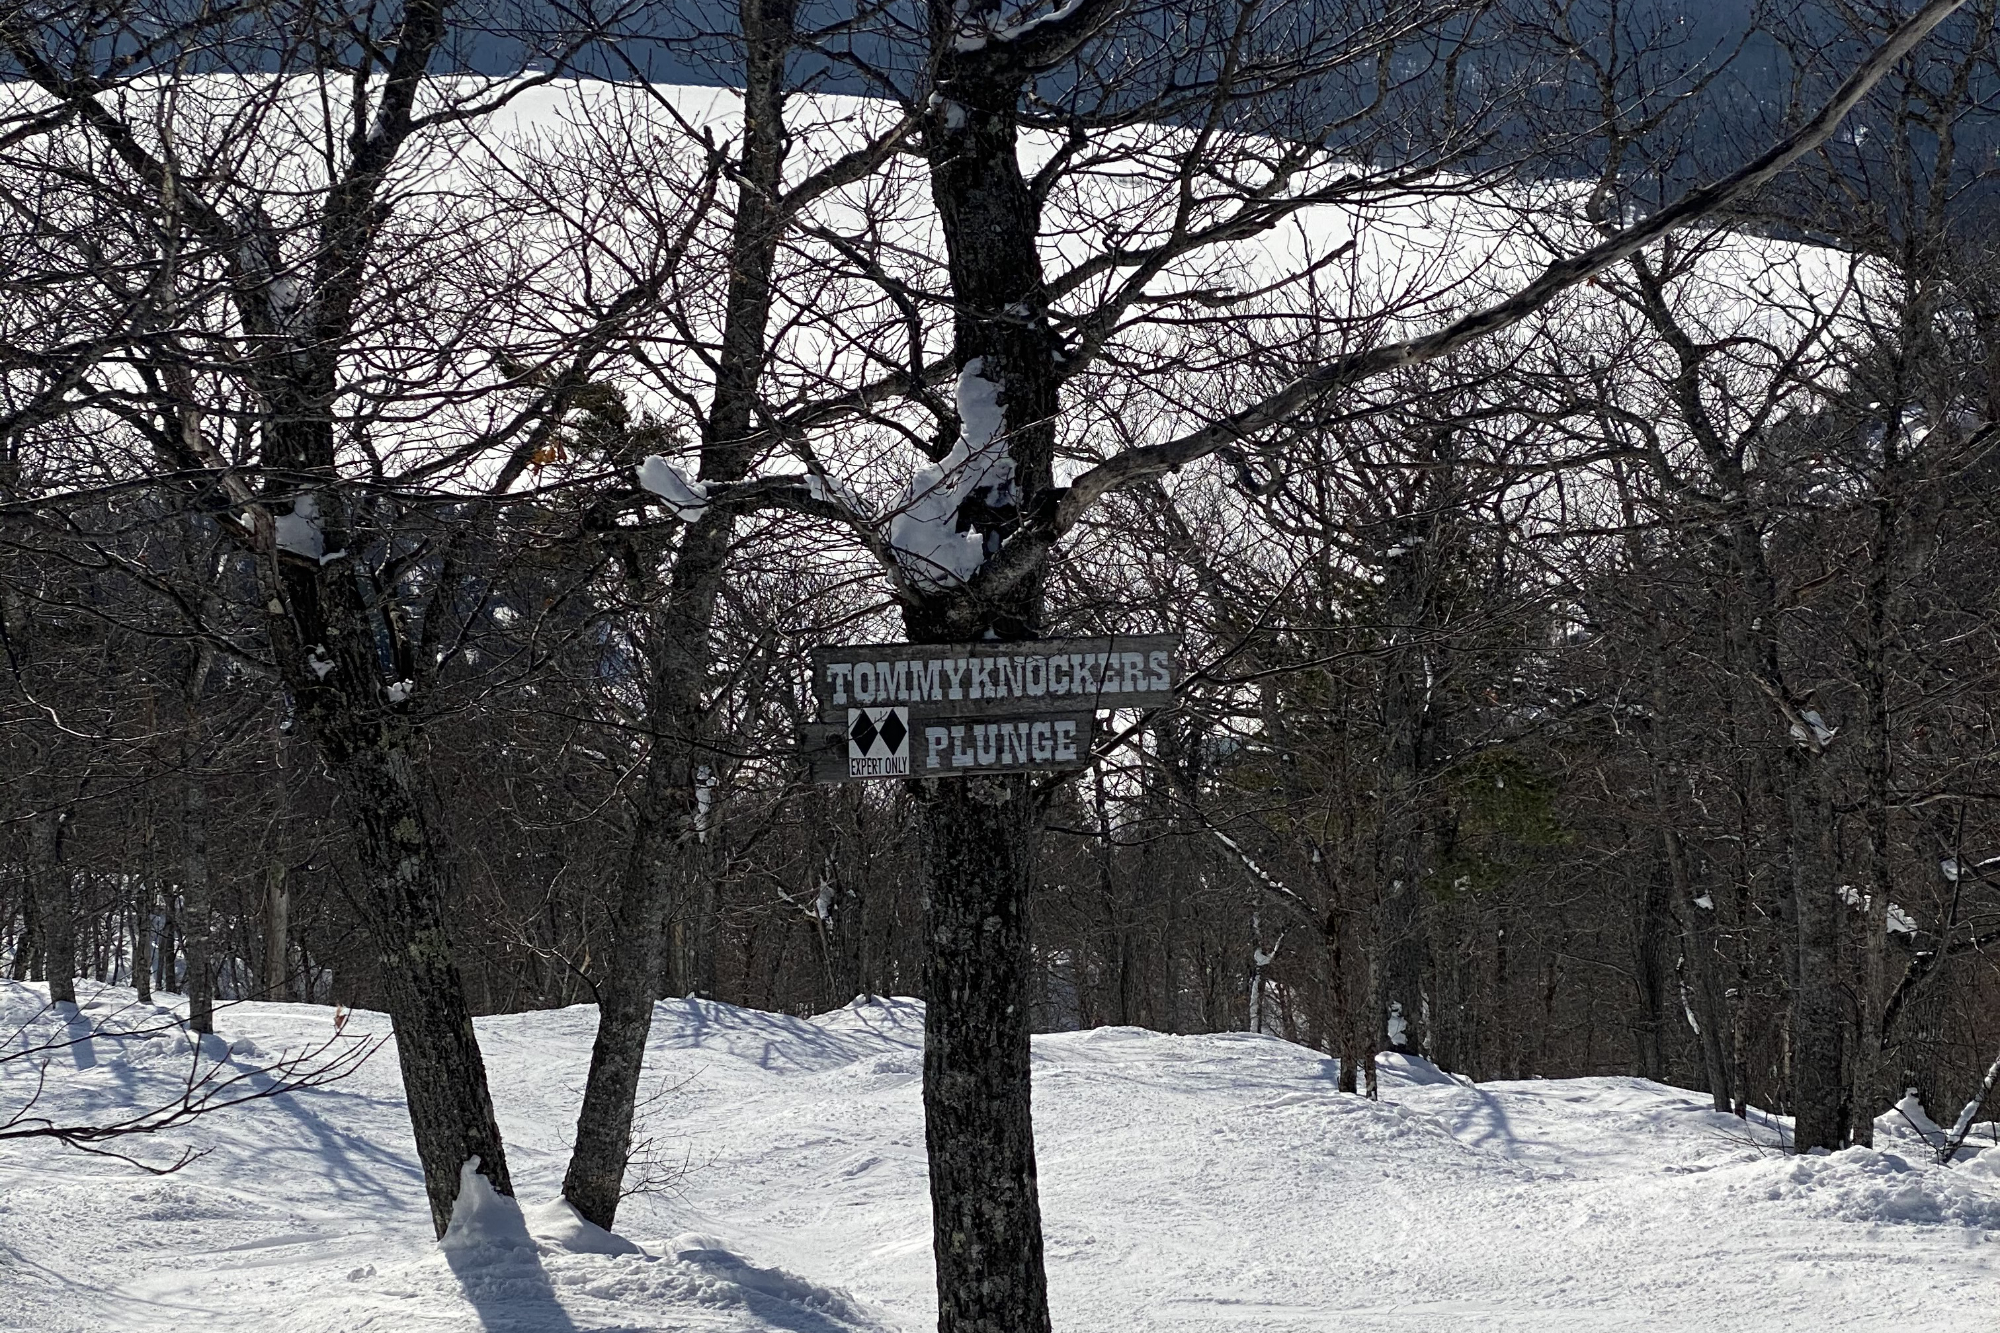 mount bohemia trail sign